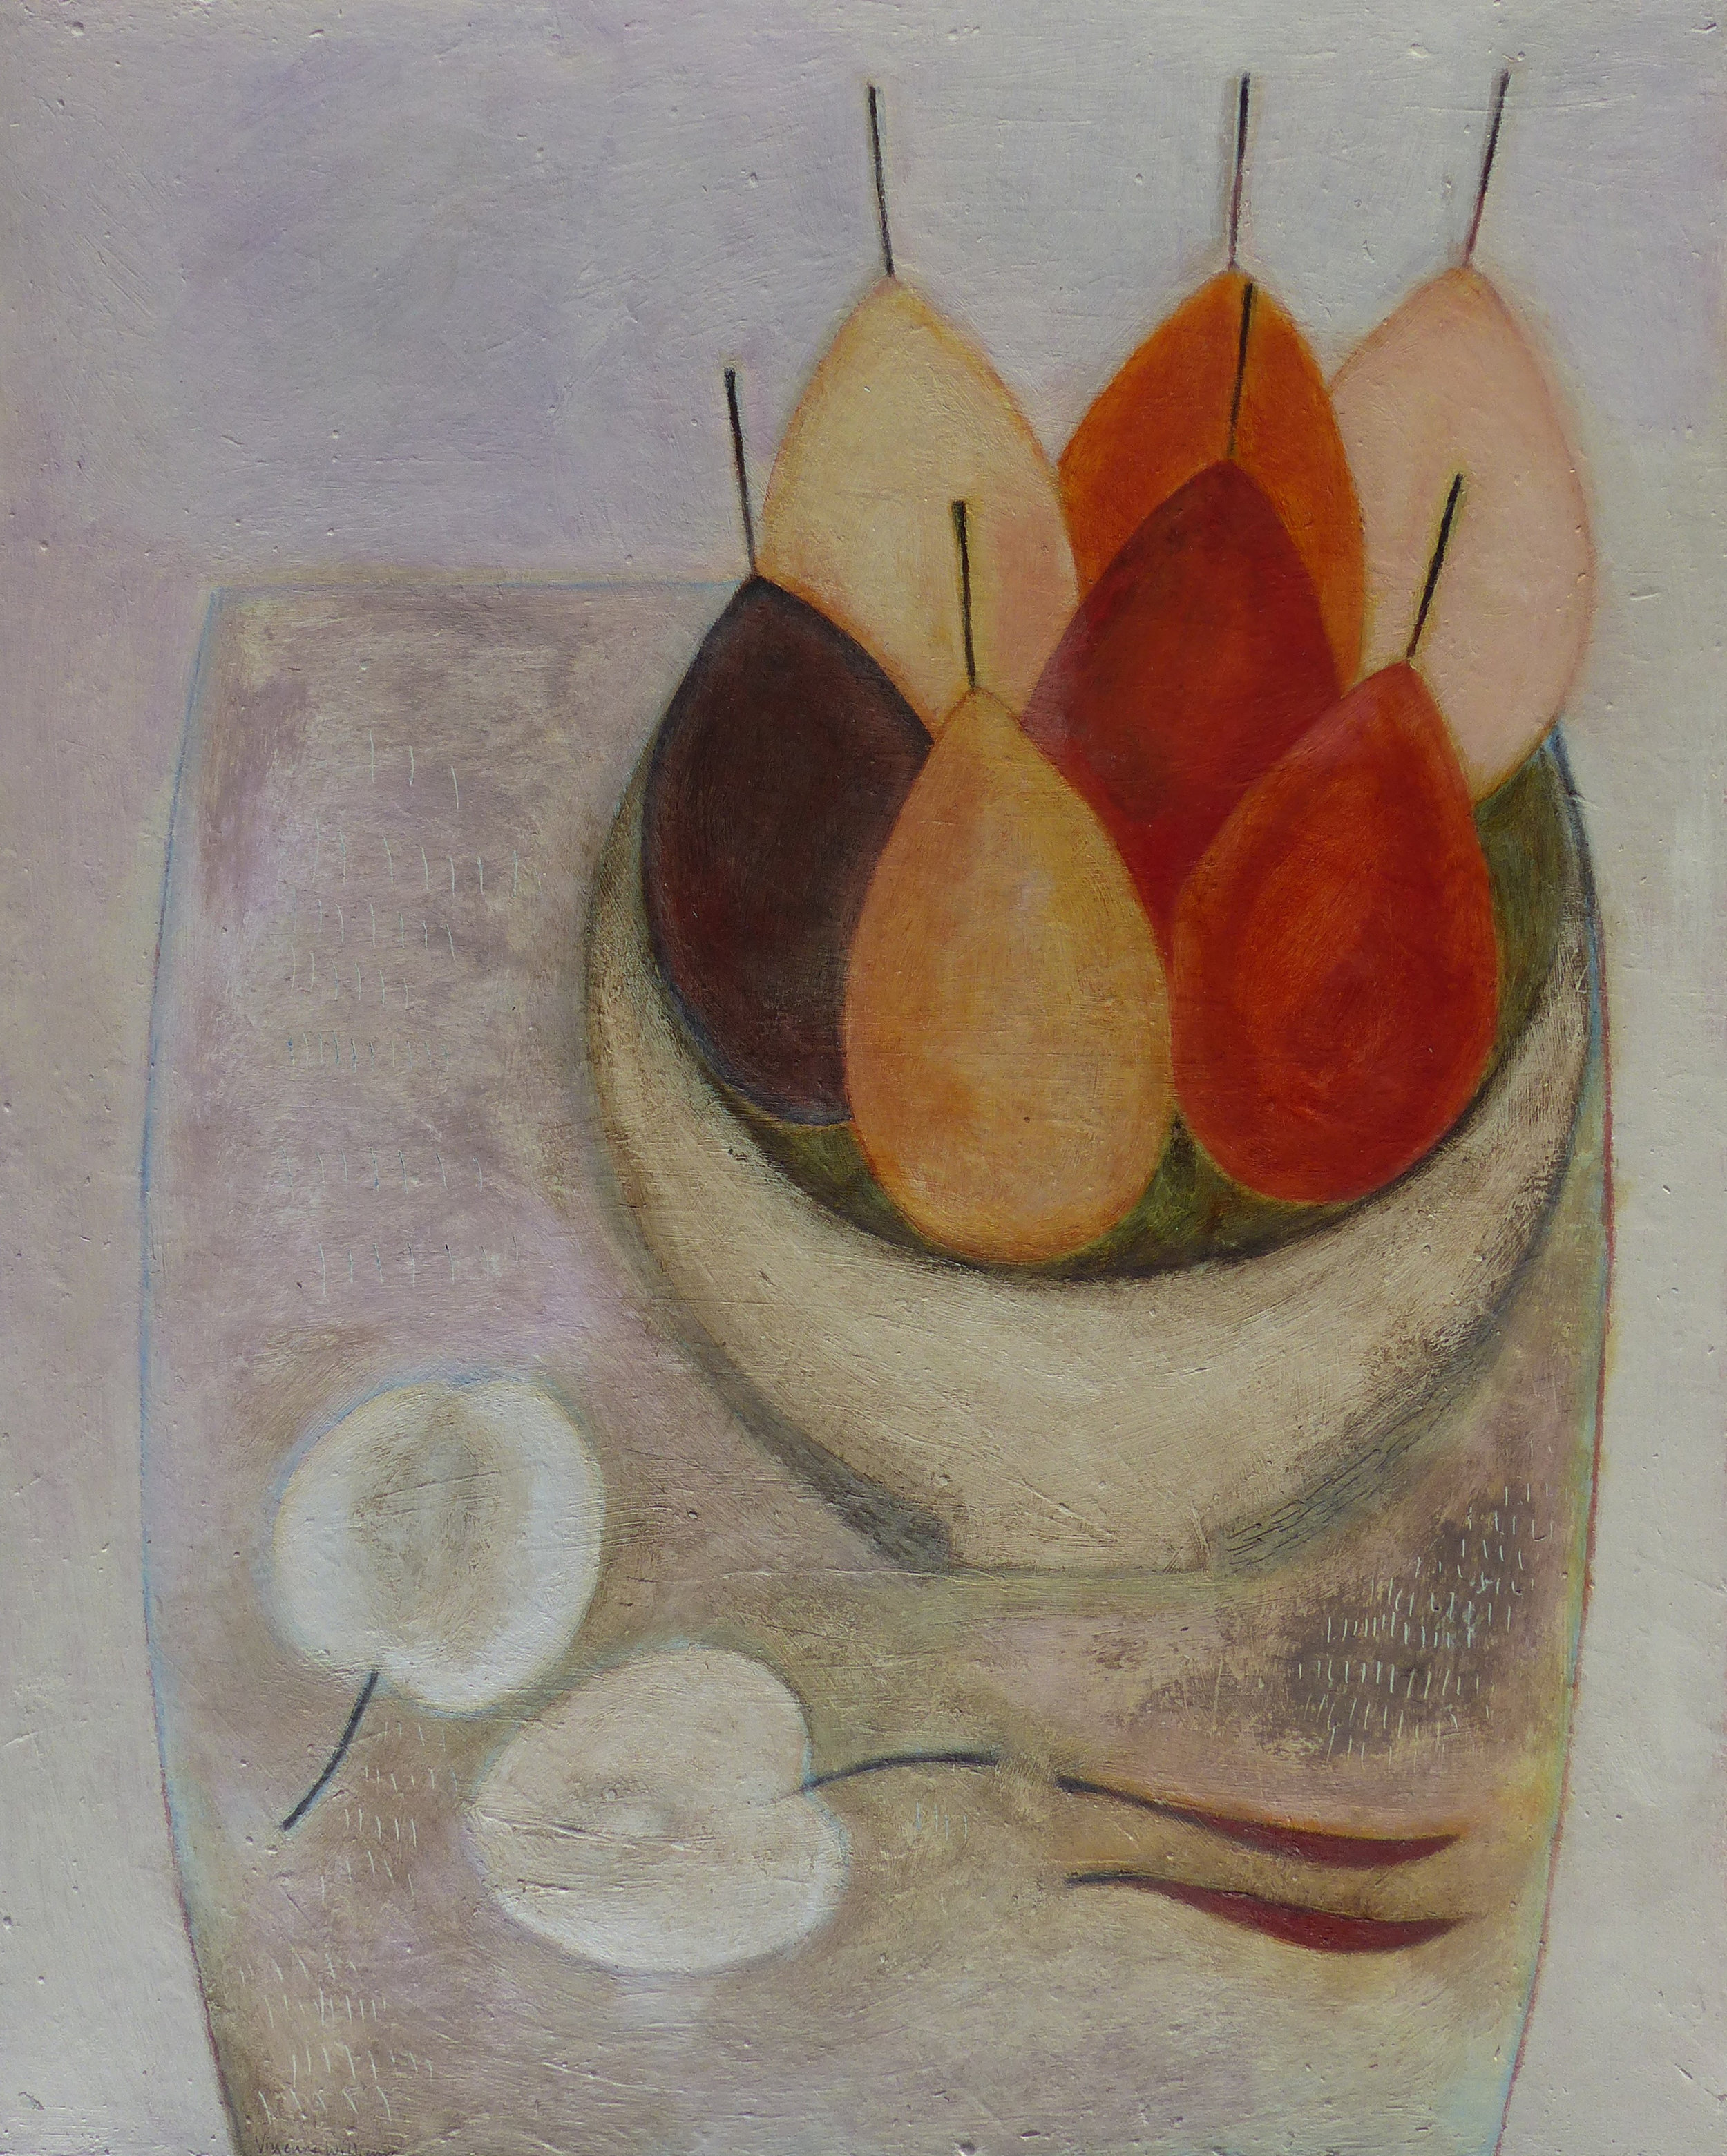 Pears, Apples and Chillies, 51cm x 41cm, 2017